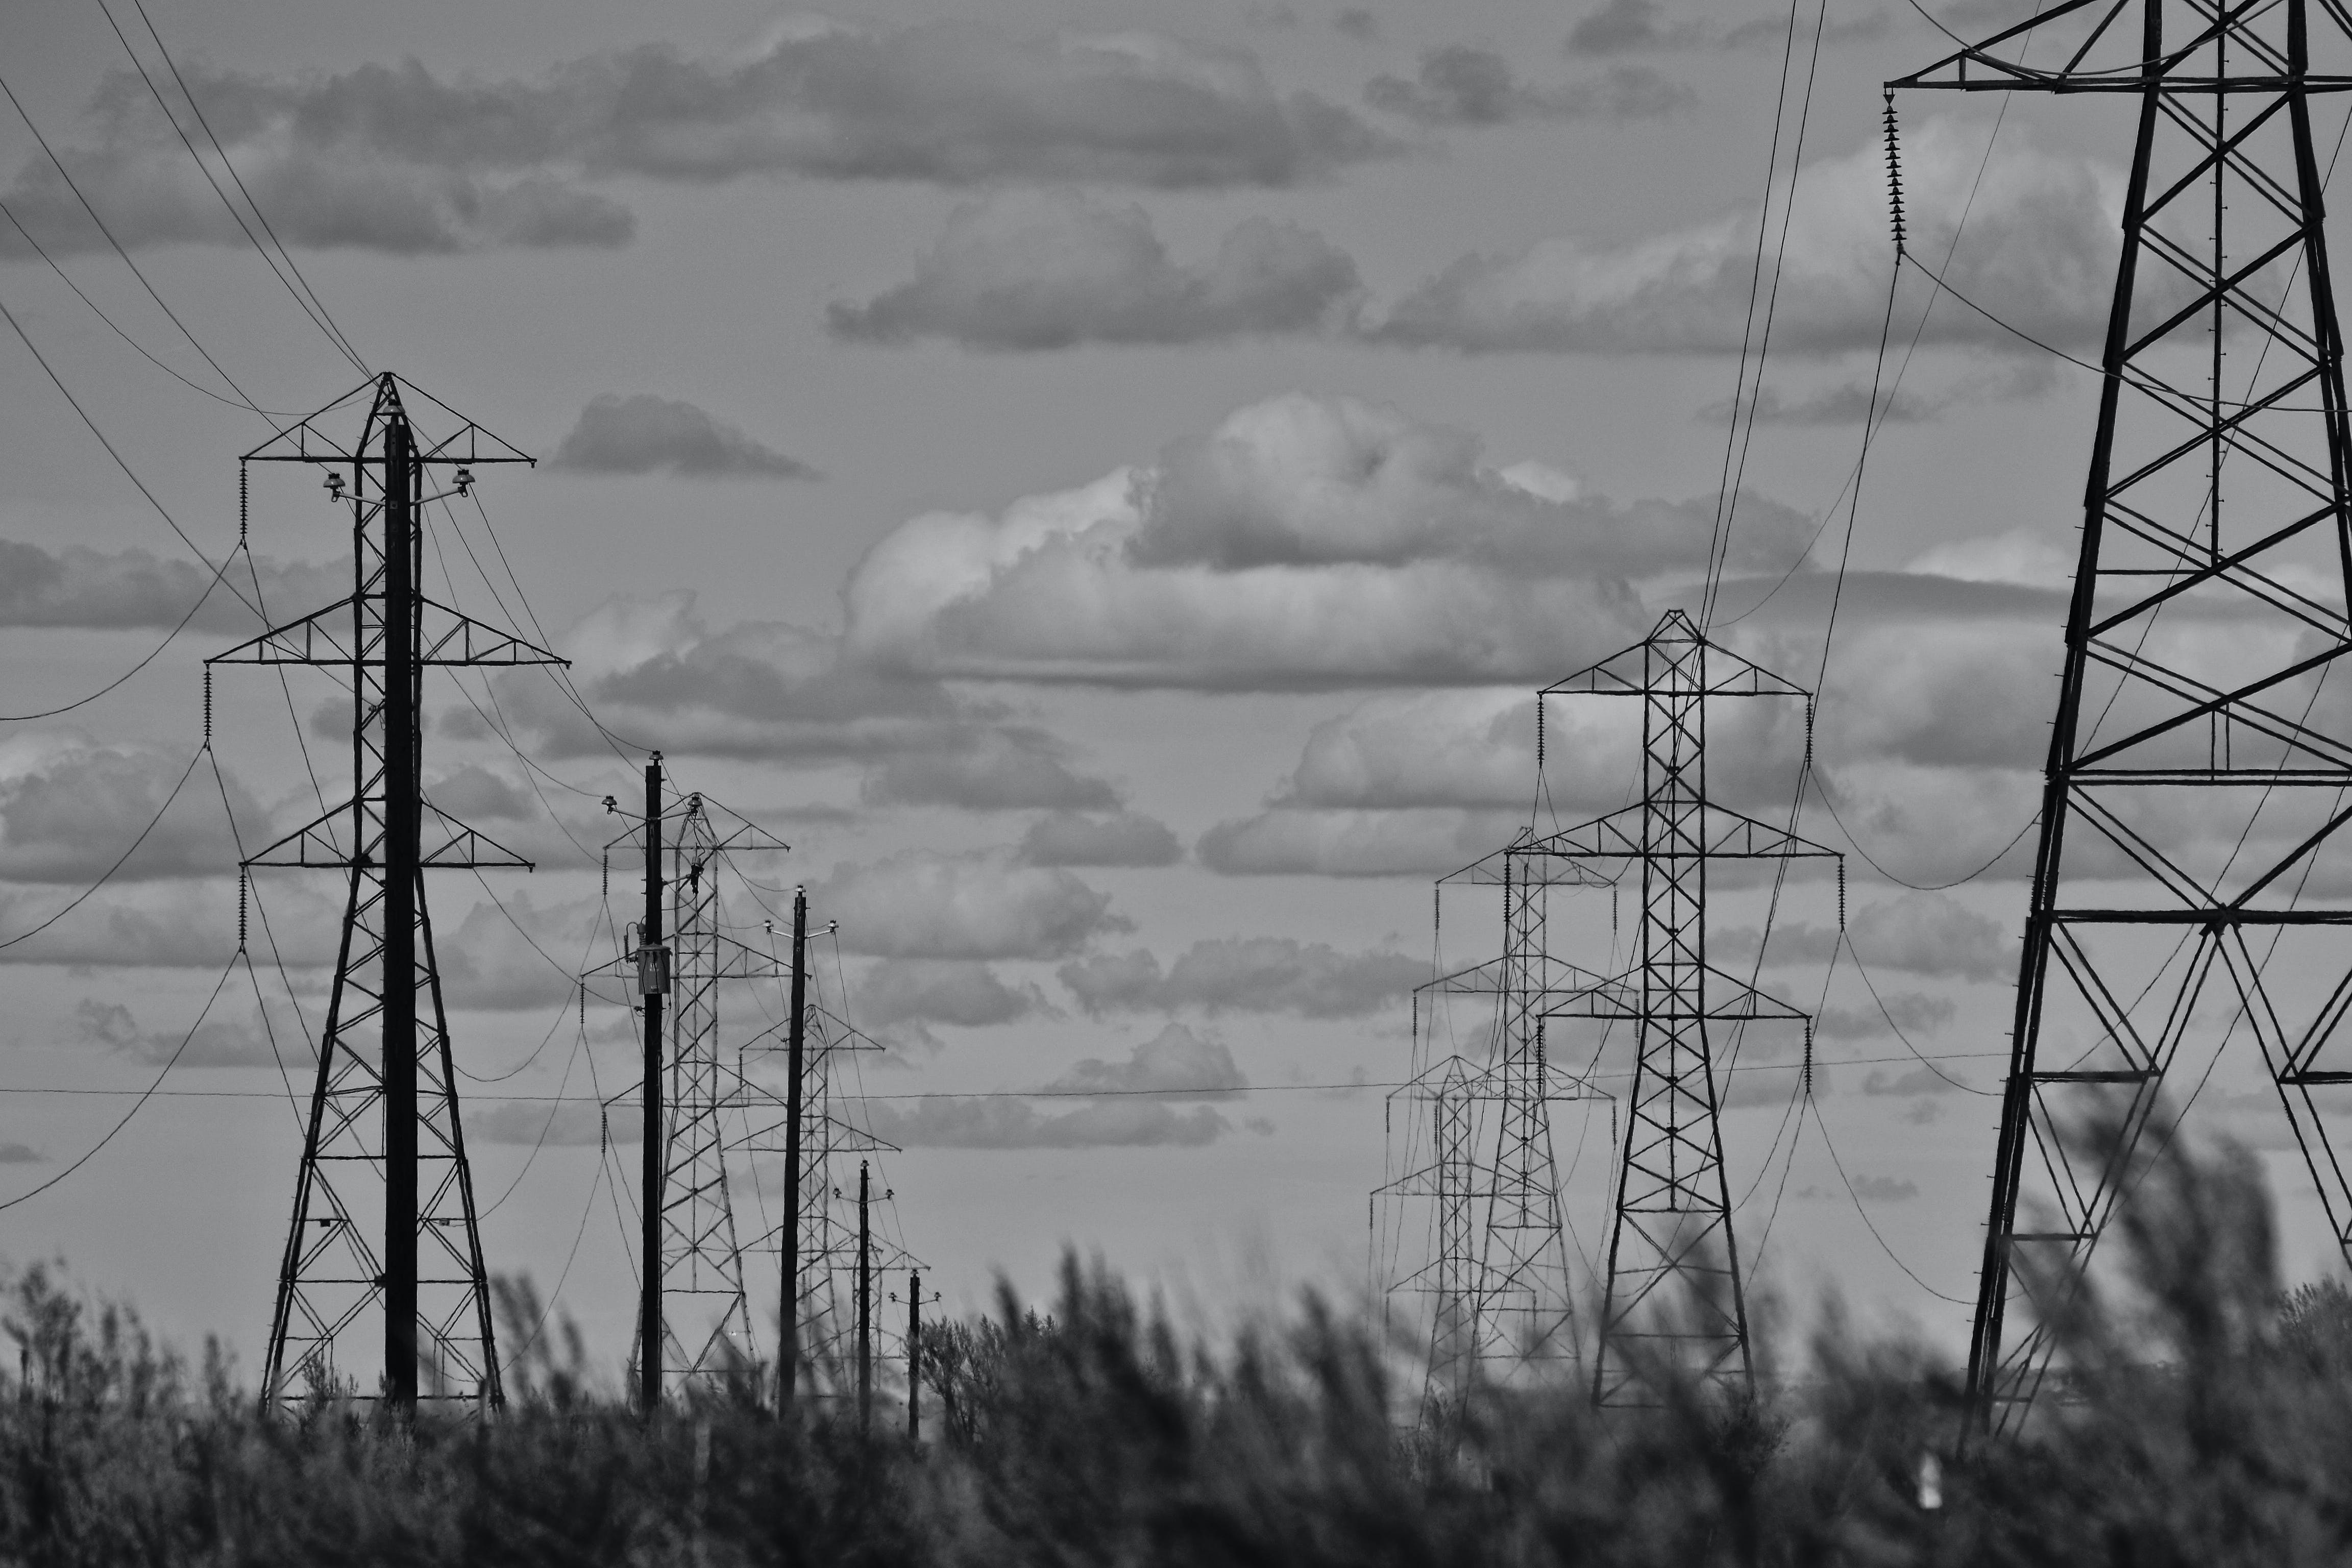 Grayscale Photo of Electricity Towers